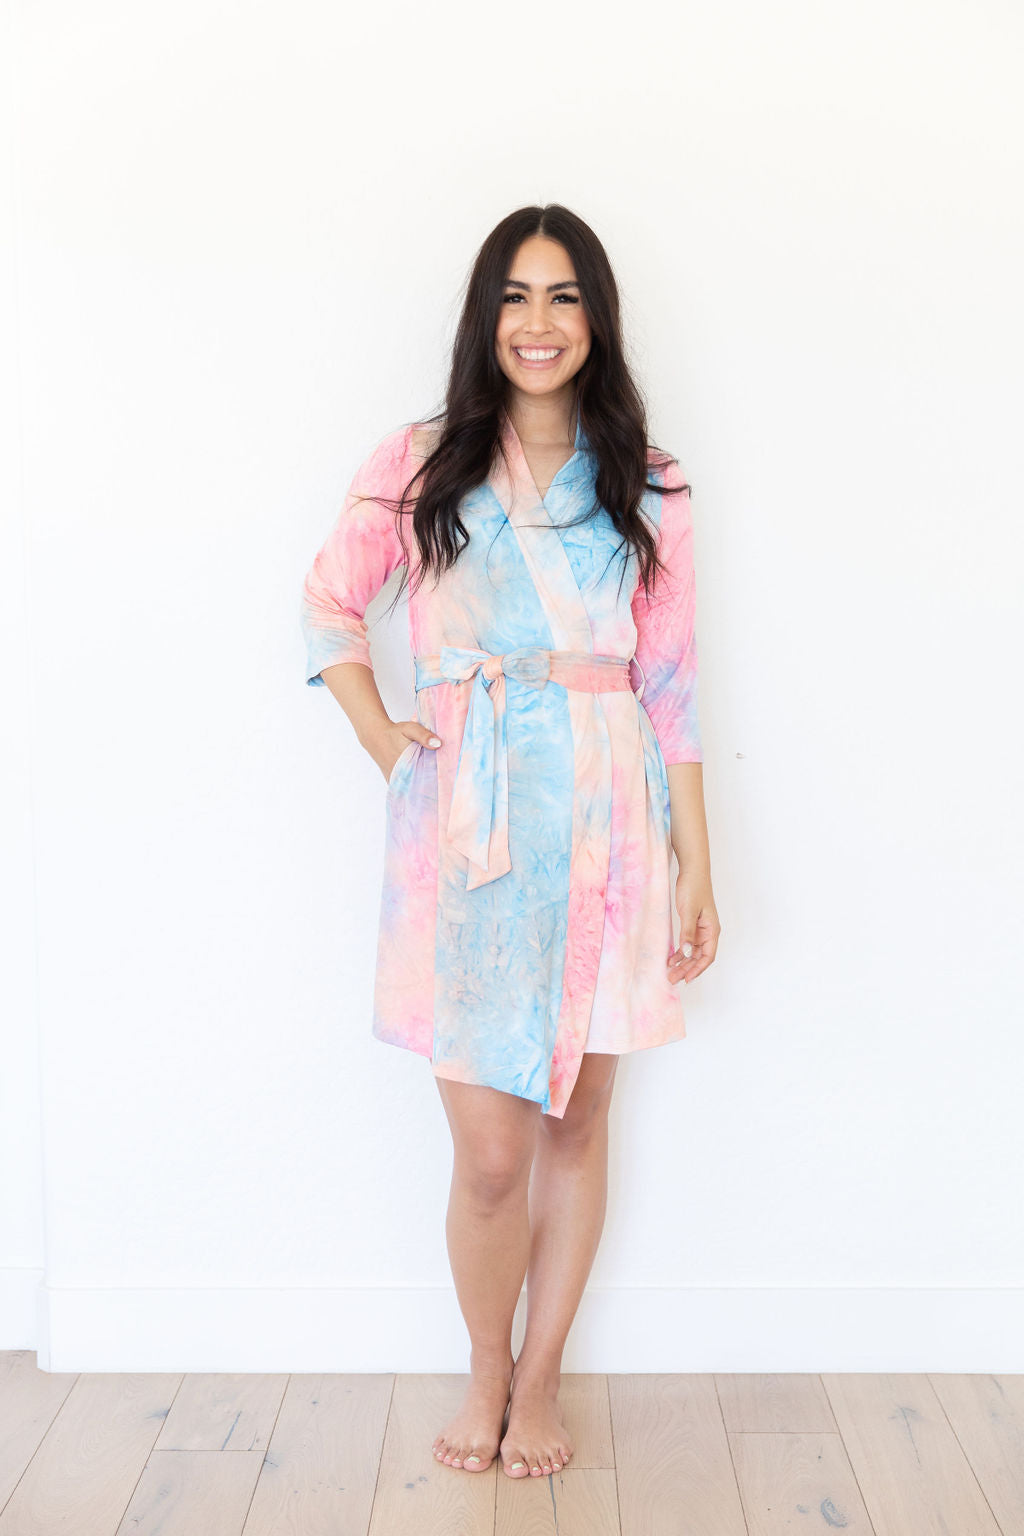 PINK + BLUE + PEACH TIE DYE WOMEN'S ROBE